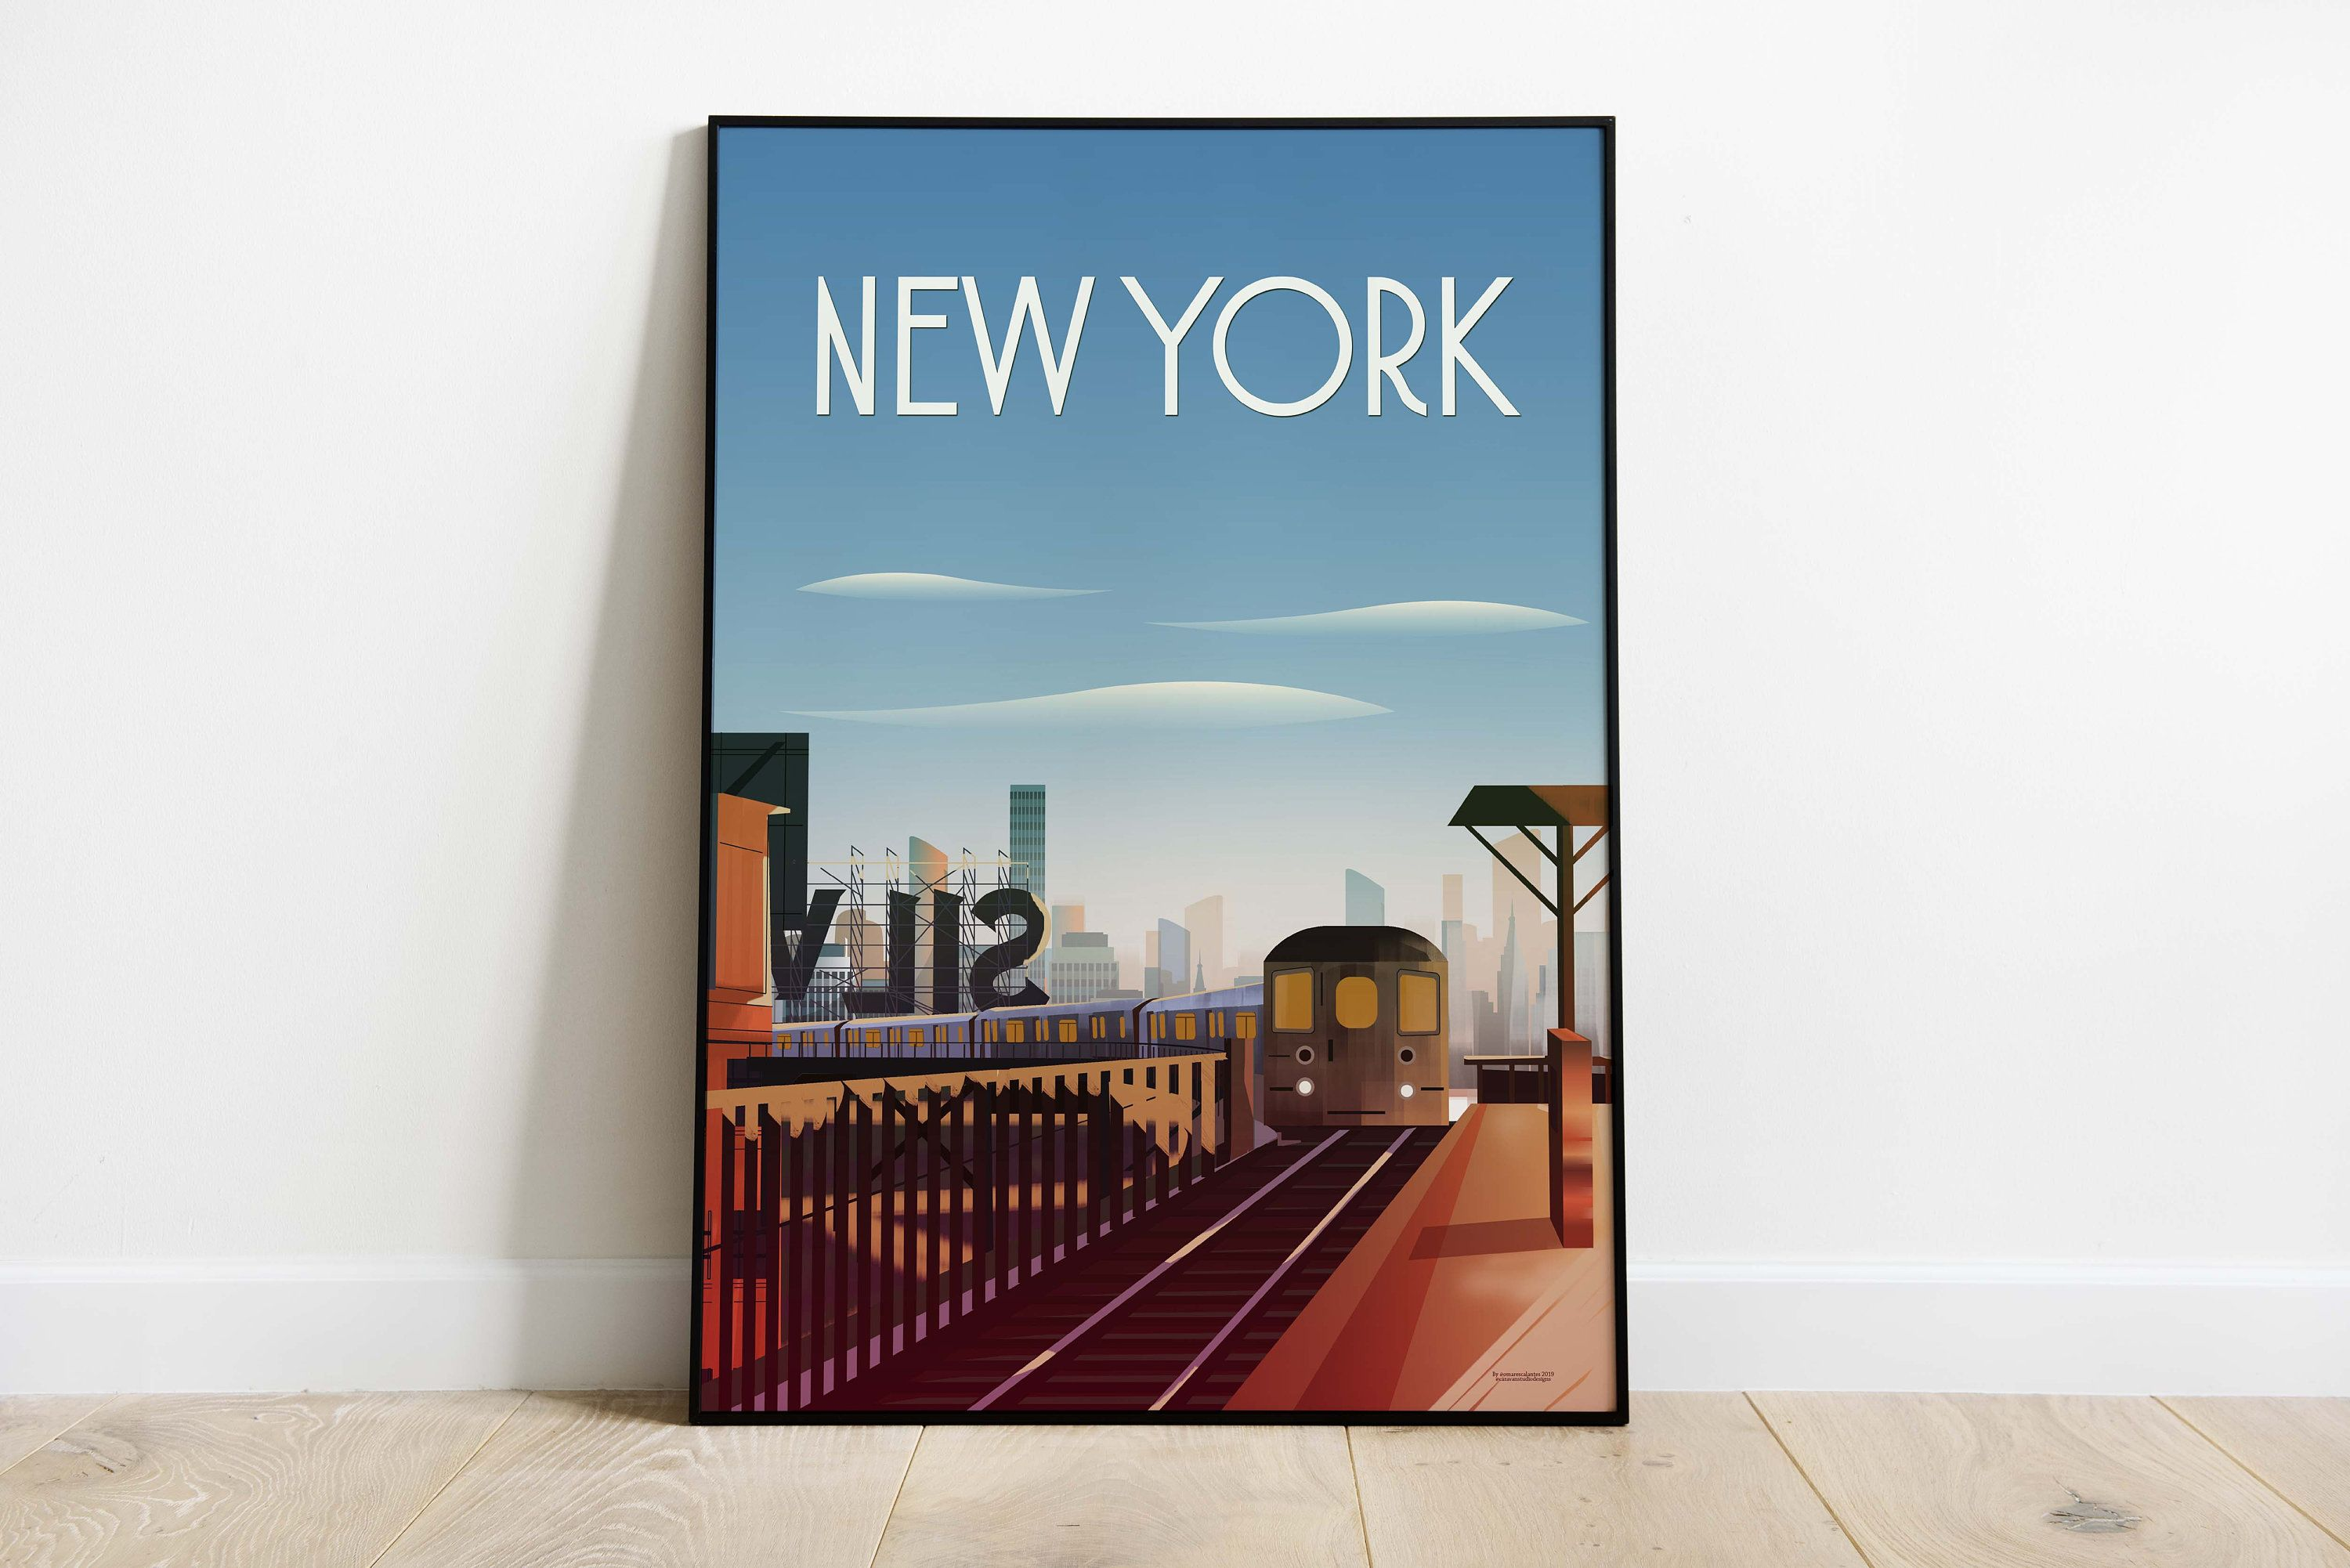 New York City Travel Poster Travel Poster Wall Art Sizes Inches 8x10 12x16 12x18 16x20 18x24 24x36 New York City Travel Travel Posters City Travel